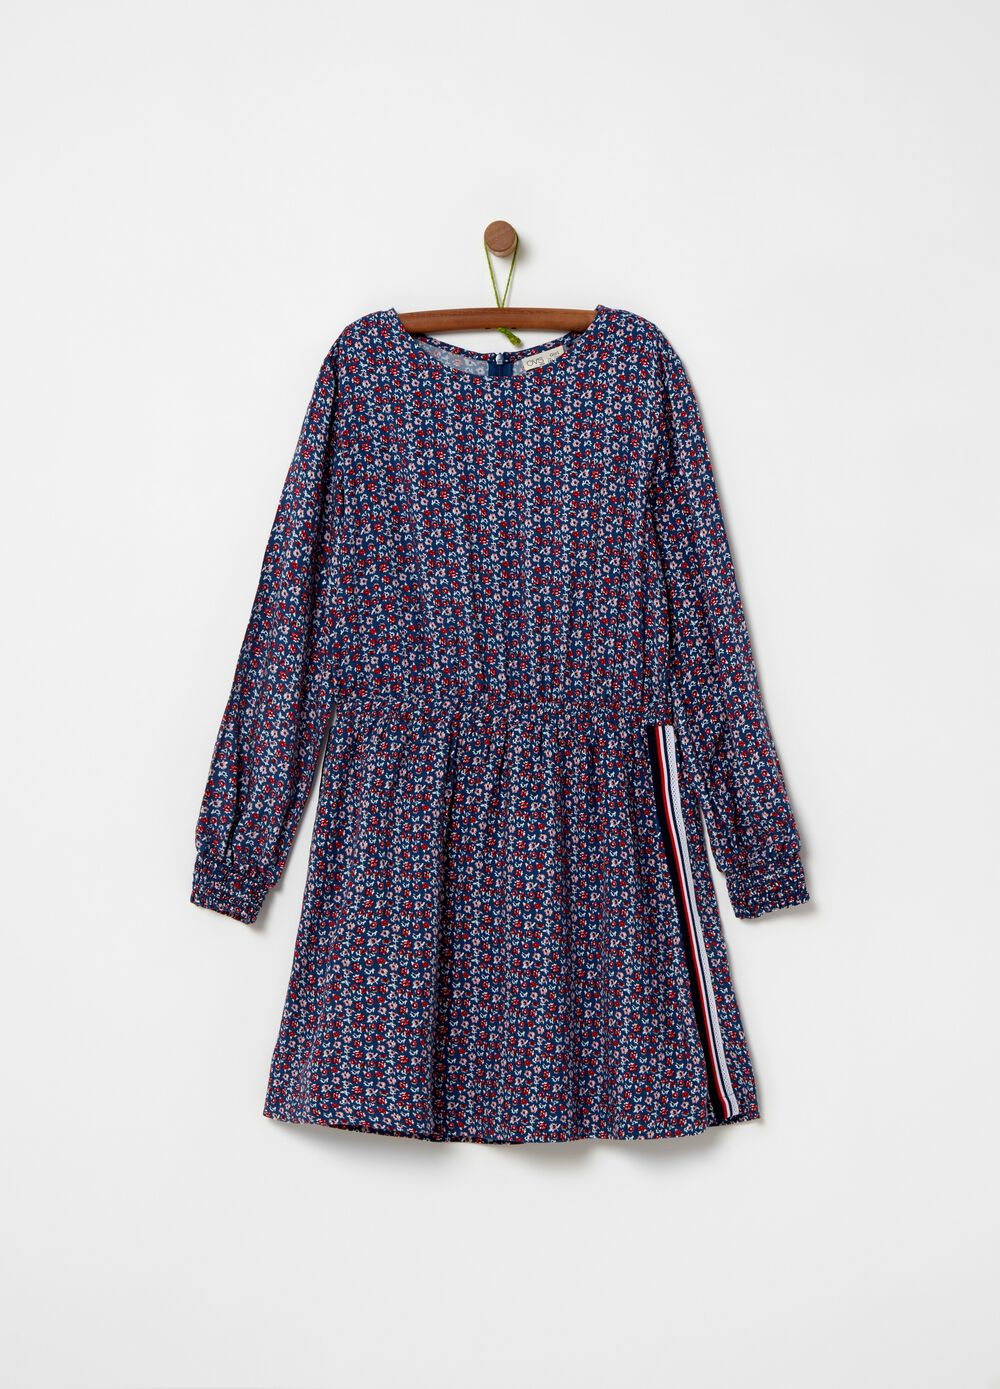 100% viscose dress with floral pattern